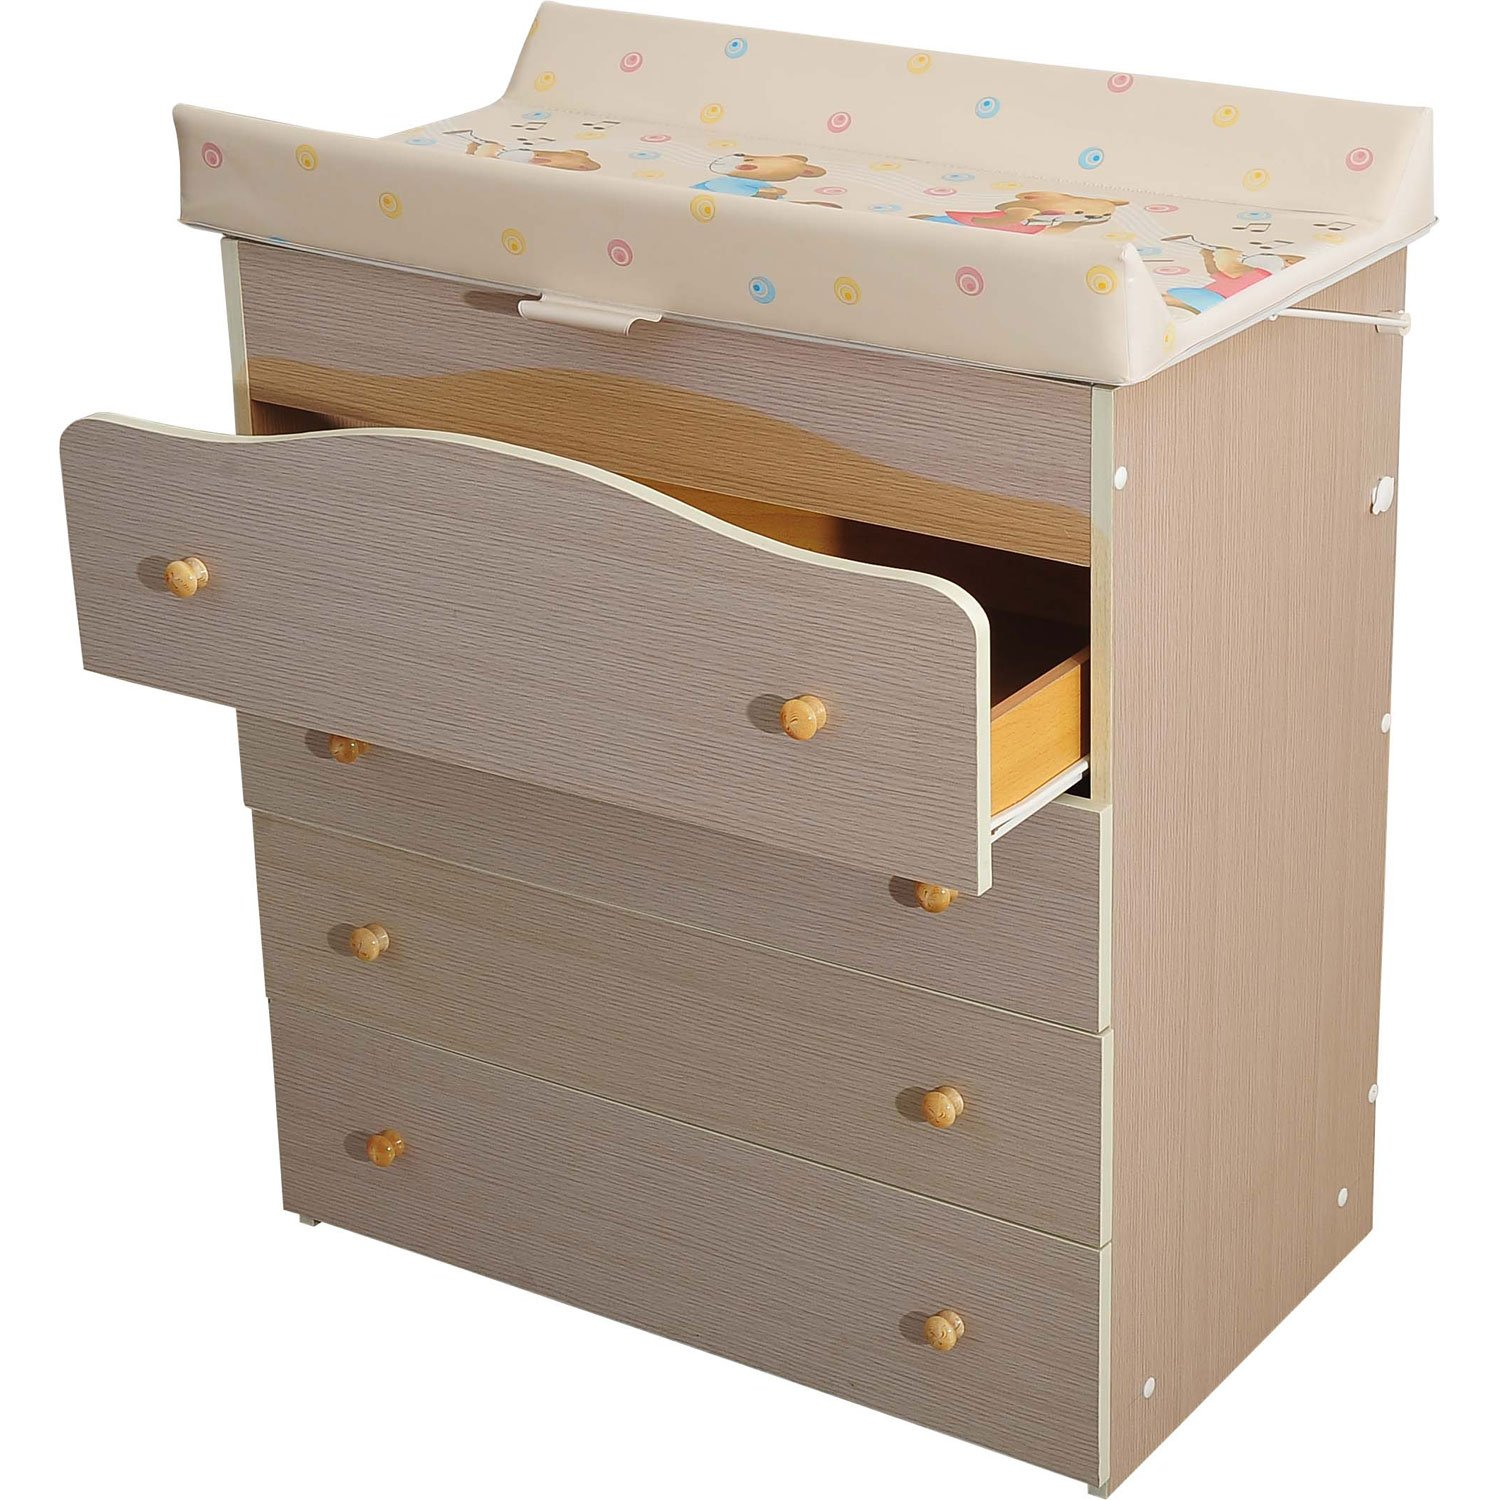 NEW Baby Changing Table Unit Changing Station Dressing Table Drawers And  Bath With Tub: Amazon.co.uk: Baby